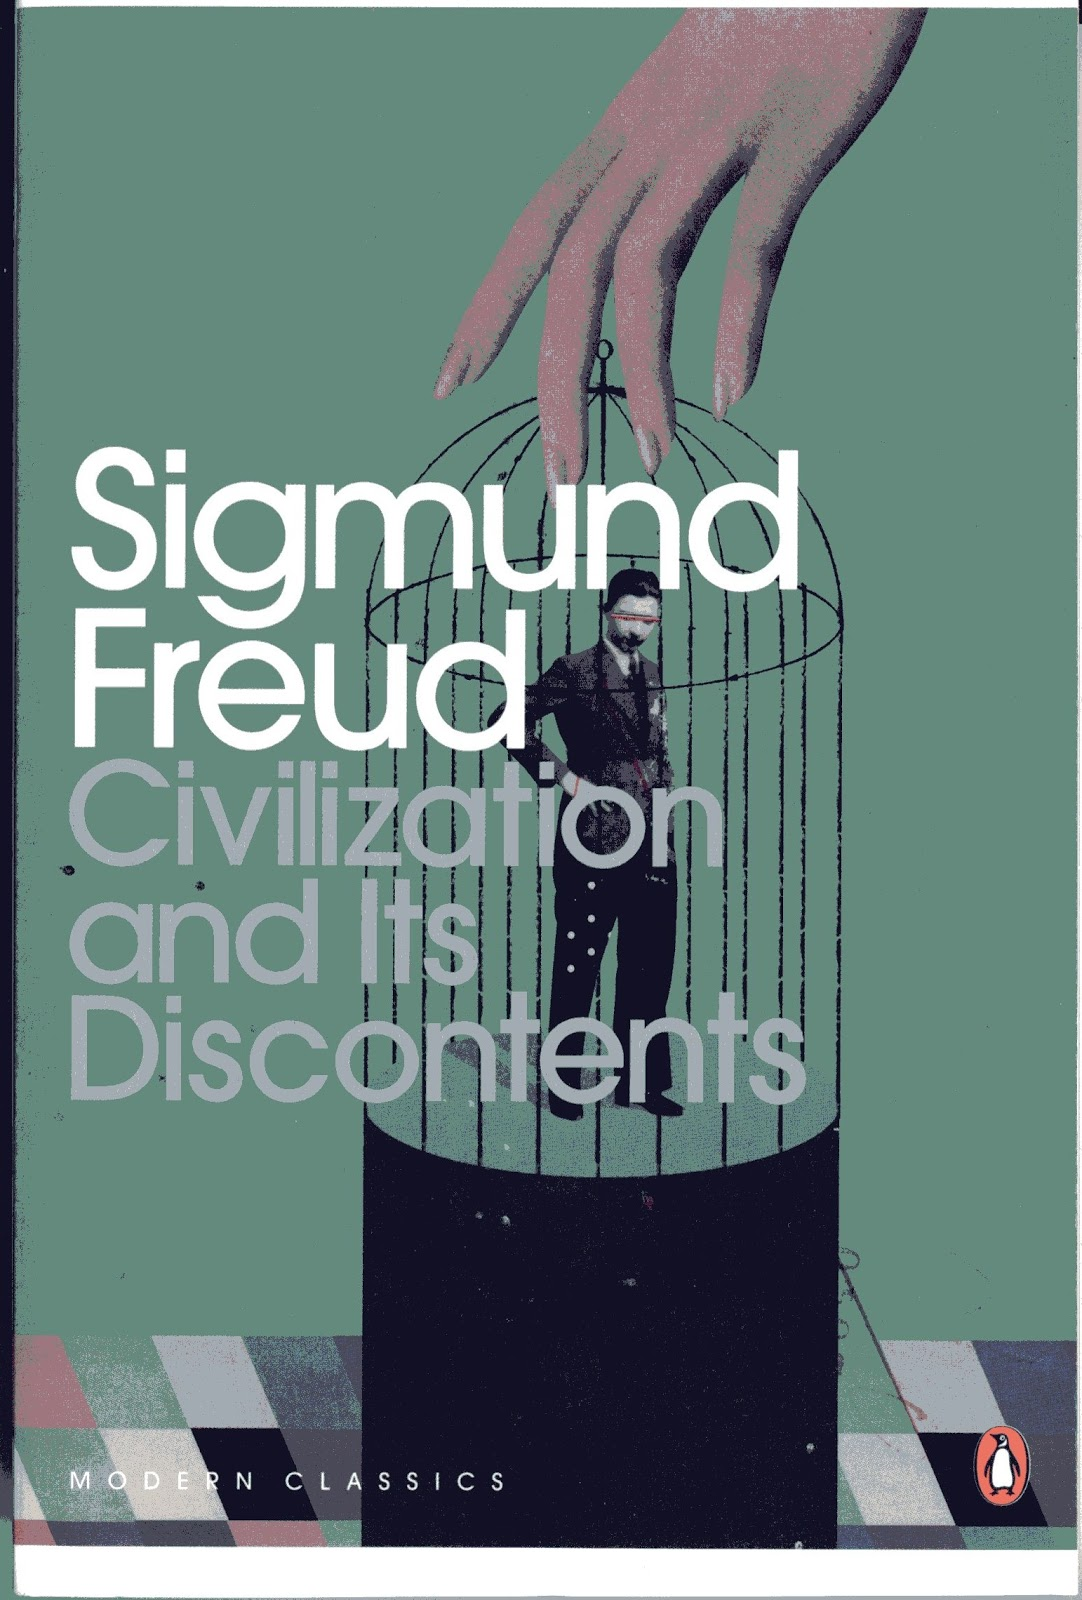 http://1.bp.blogspot.com/-rWEE9cGuth0/UTUzgmBCBJI/AAAAAAAAAek/cDDwxCFlYYI/s1600/LS801_Freud_Civilization+and+Its+Discontents_14.jpg